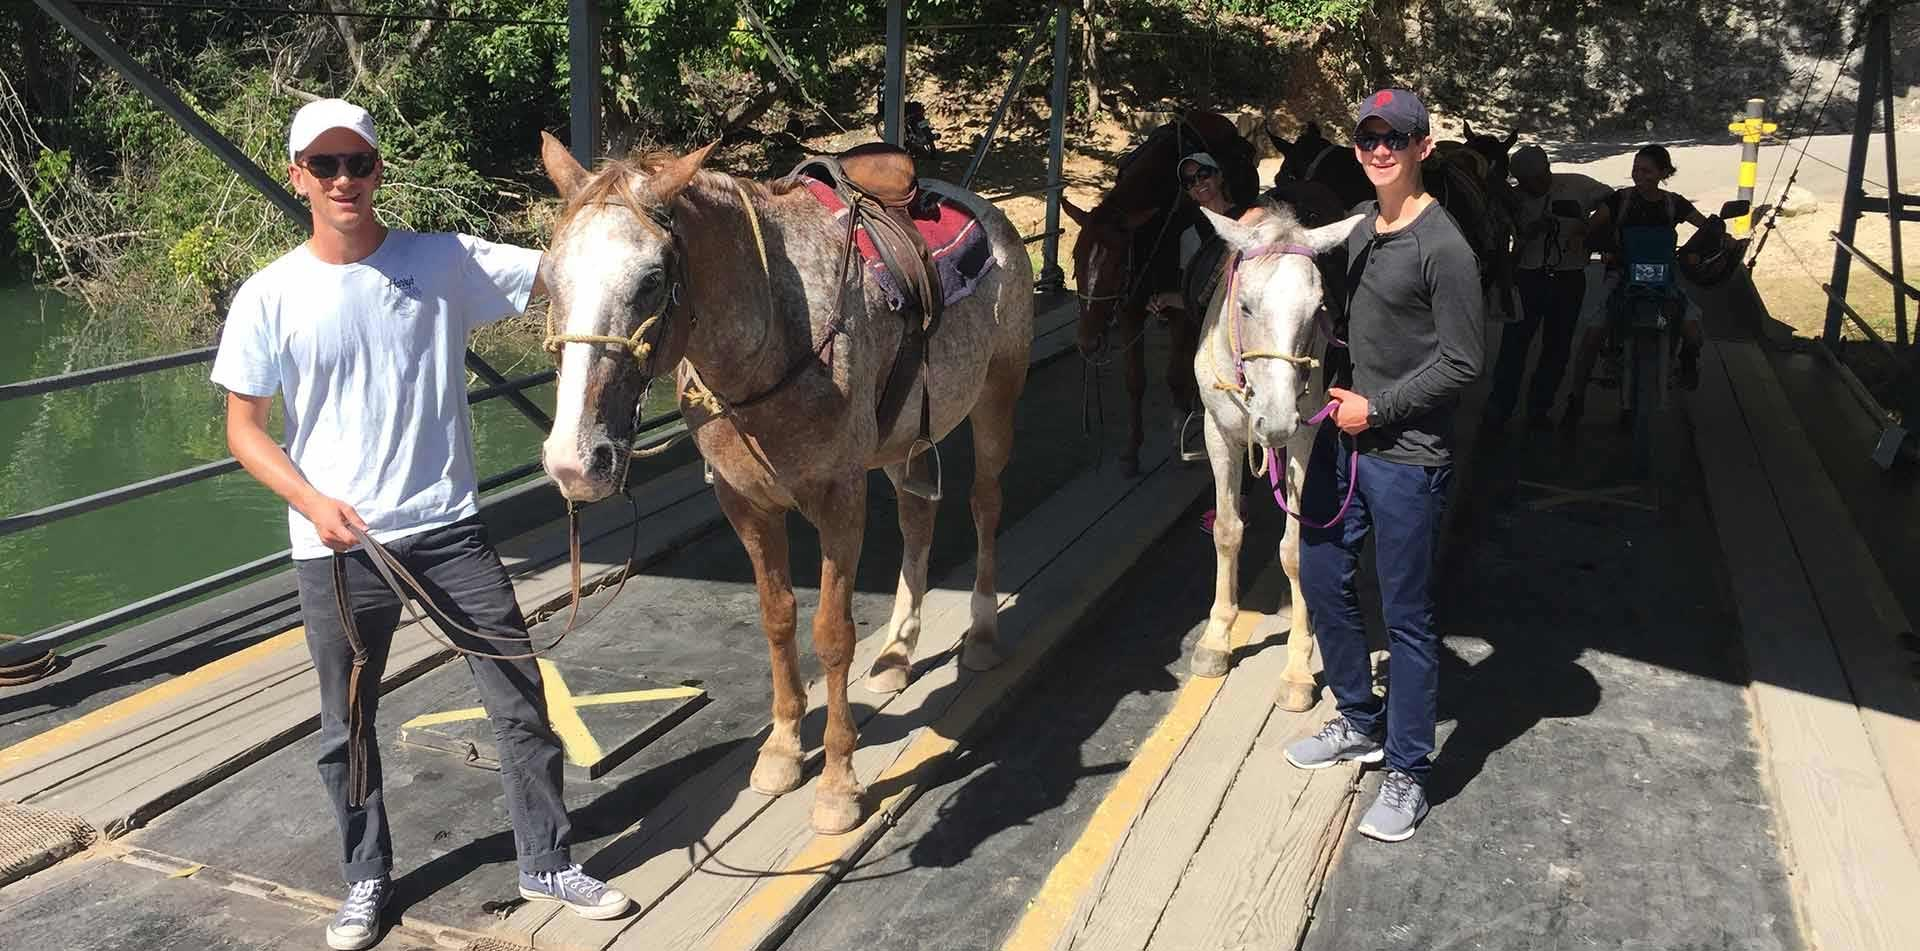 Central America Belize group standing next to horses on bridge smiling - luxury vacation destinations